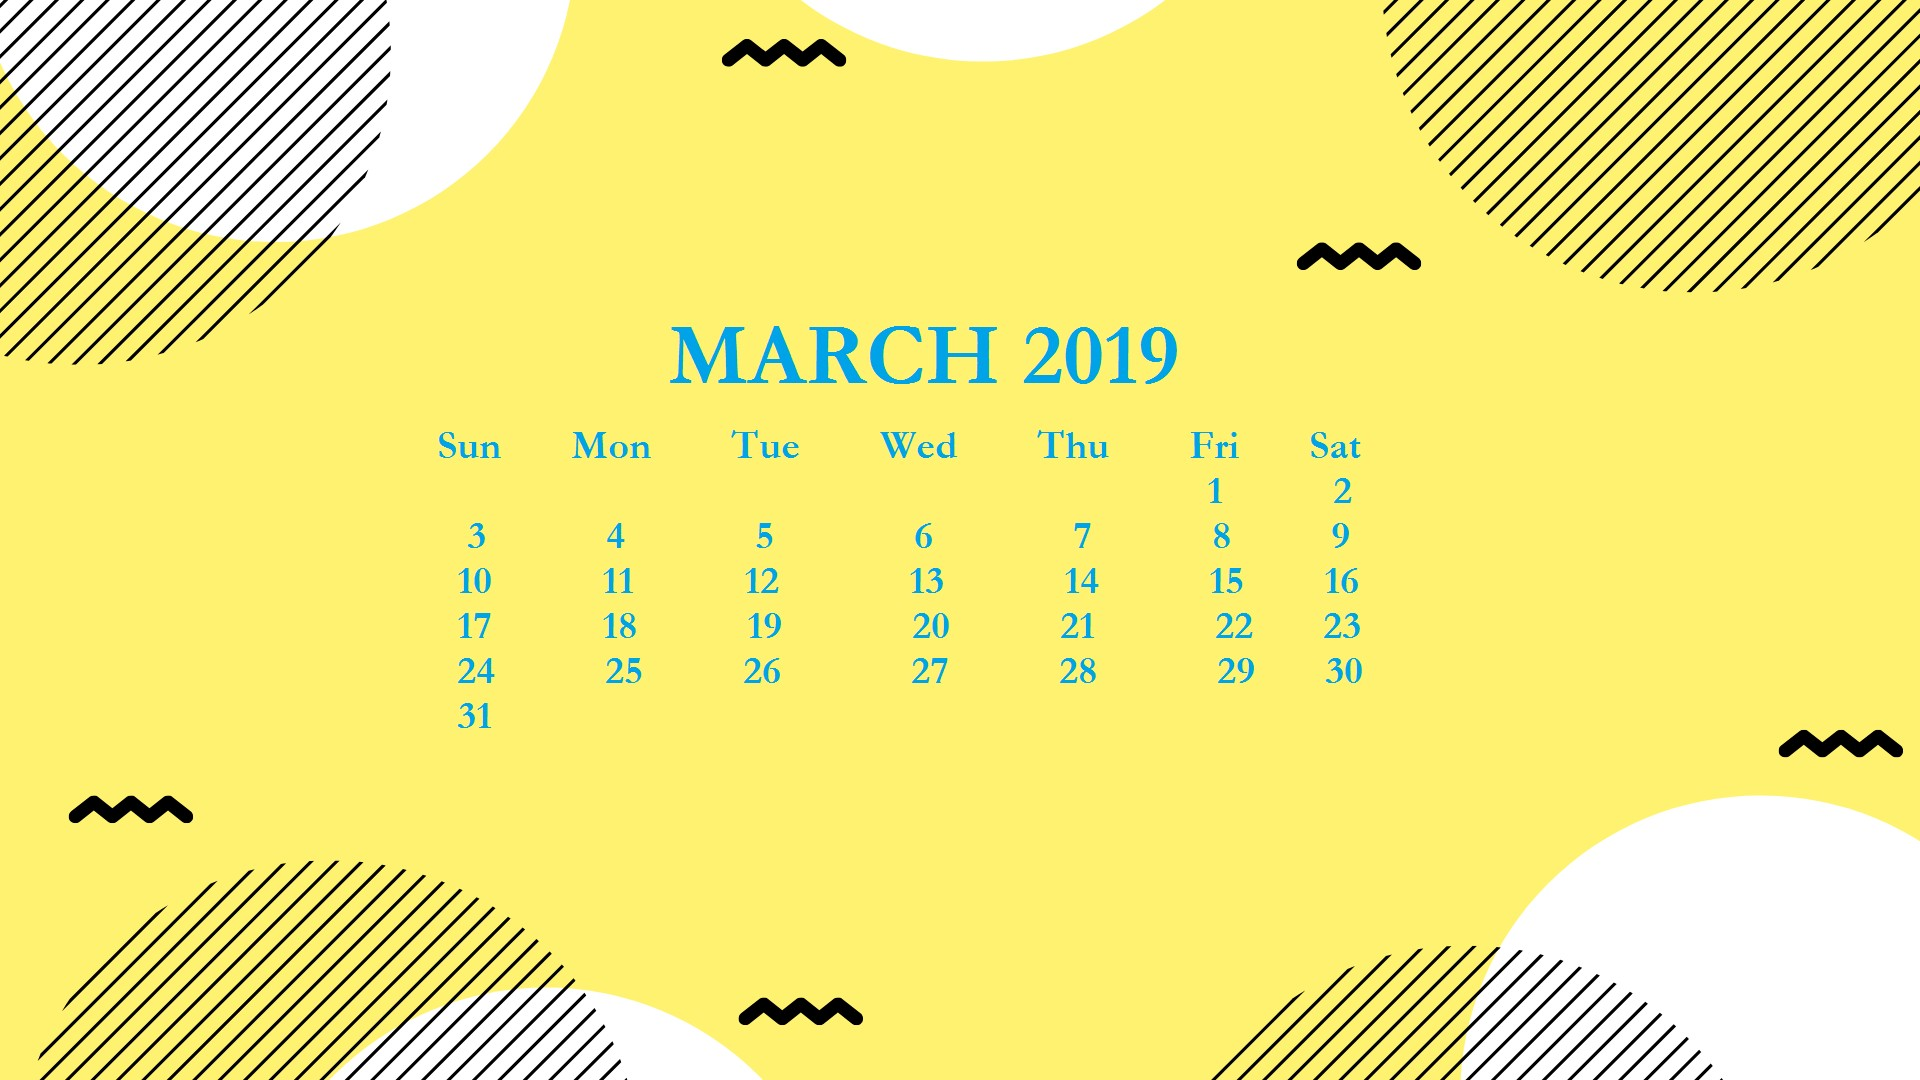 March Calendar for Kids Más Reciente March 2019 Calendar Wallpaper for Desktop March2019 2019calendar Of March Calendar for Kids Recientes Preschool Calendar Template Lara Expolicenciaslatam